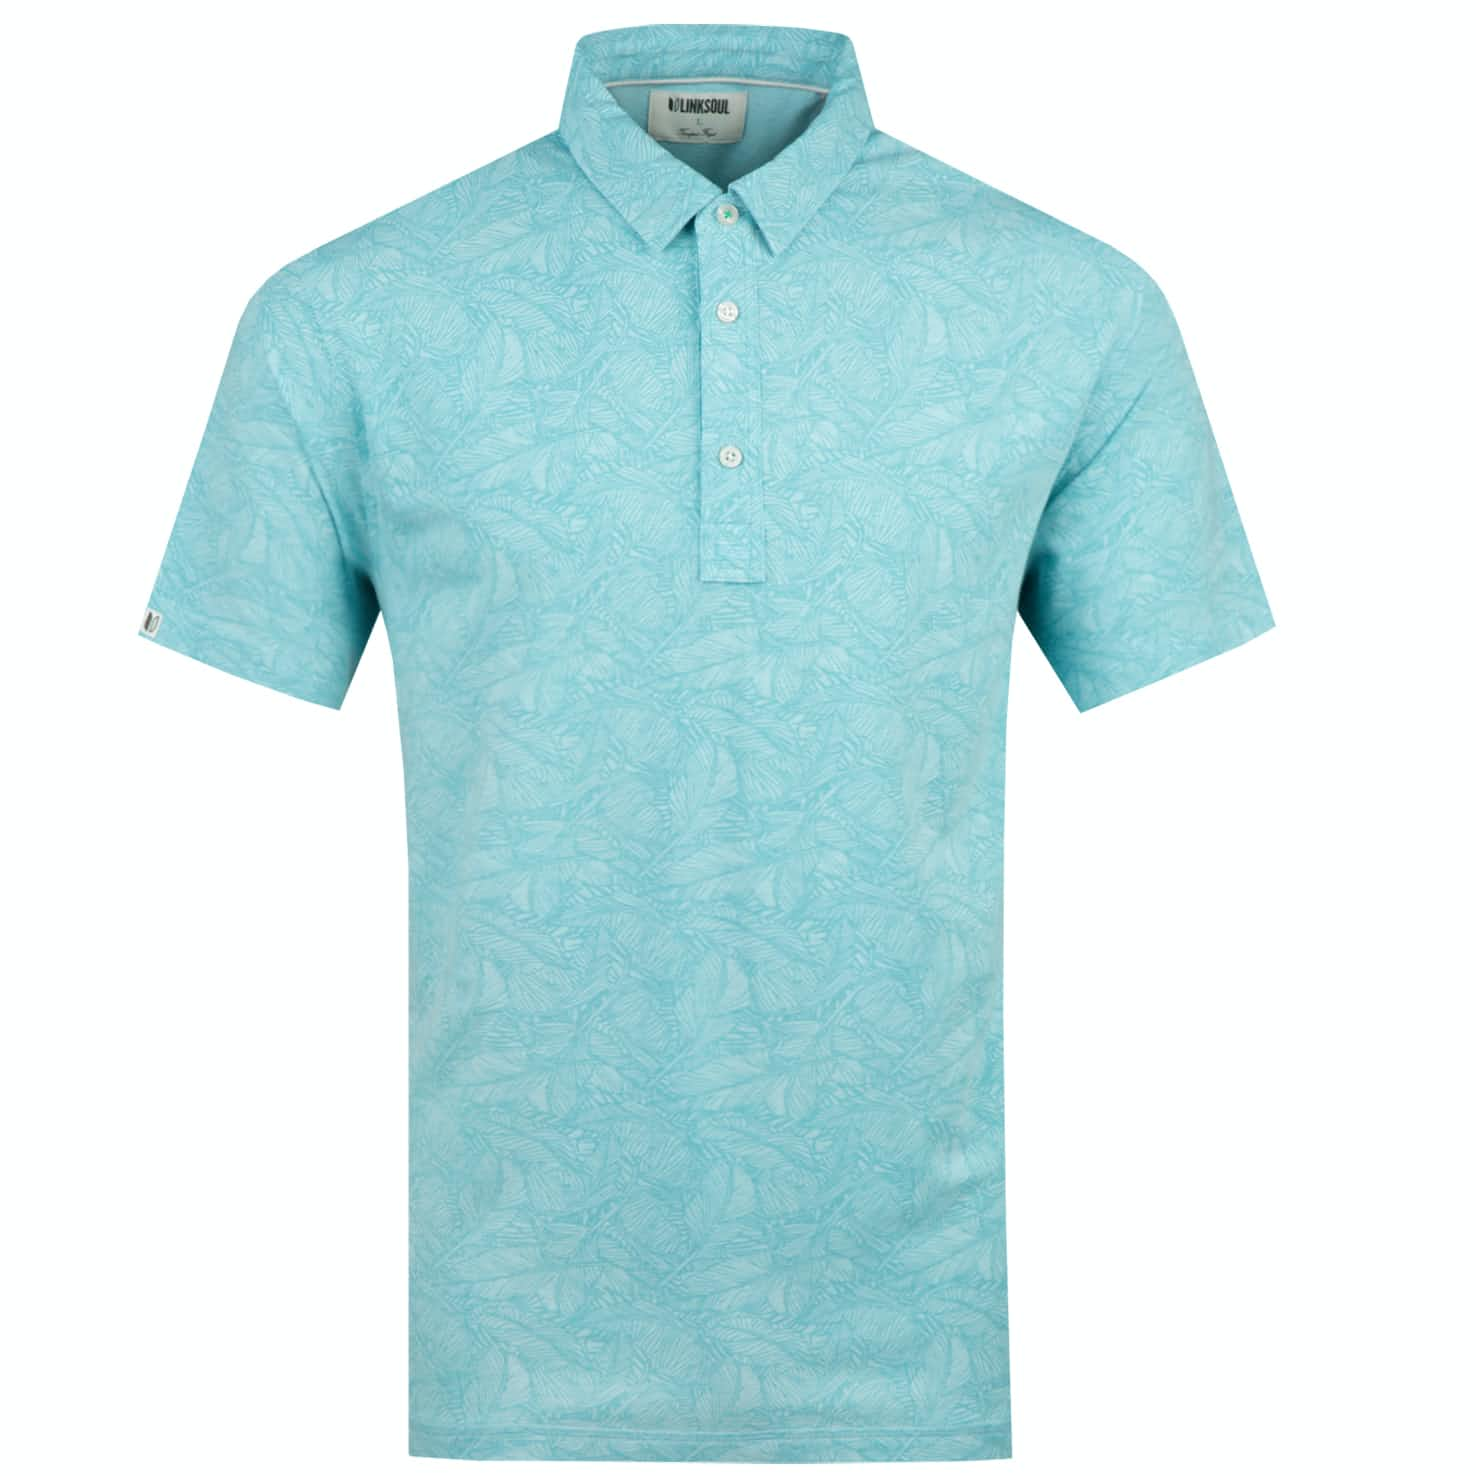 Dry Tech Leaf Print Polo Tidepool Heather - SS19